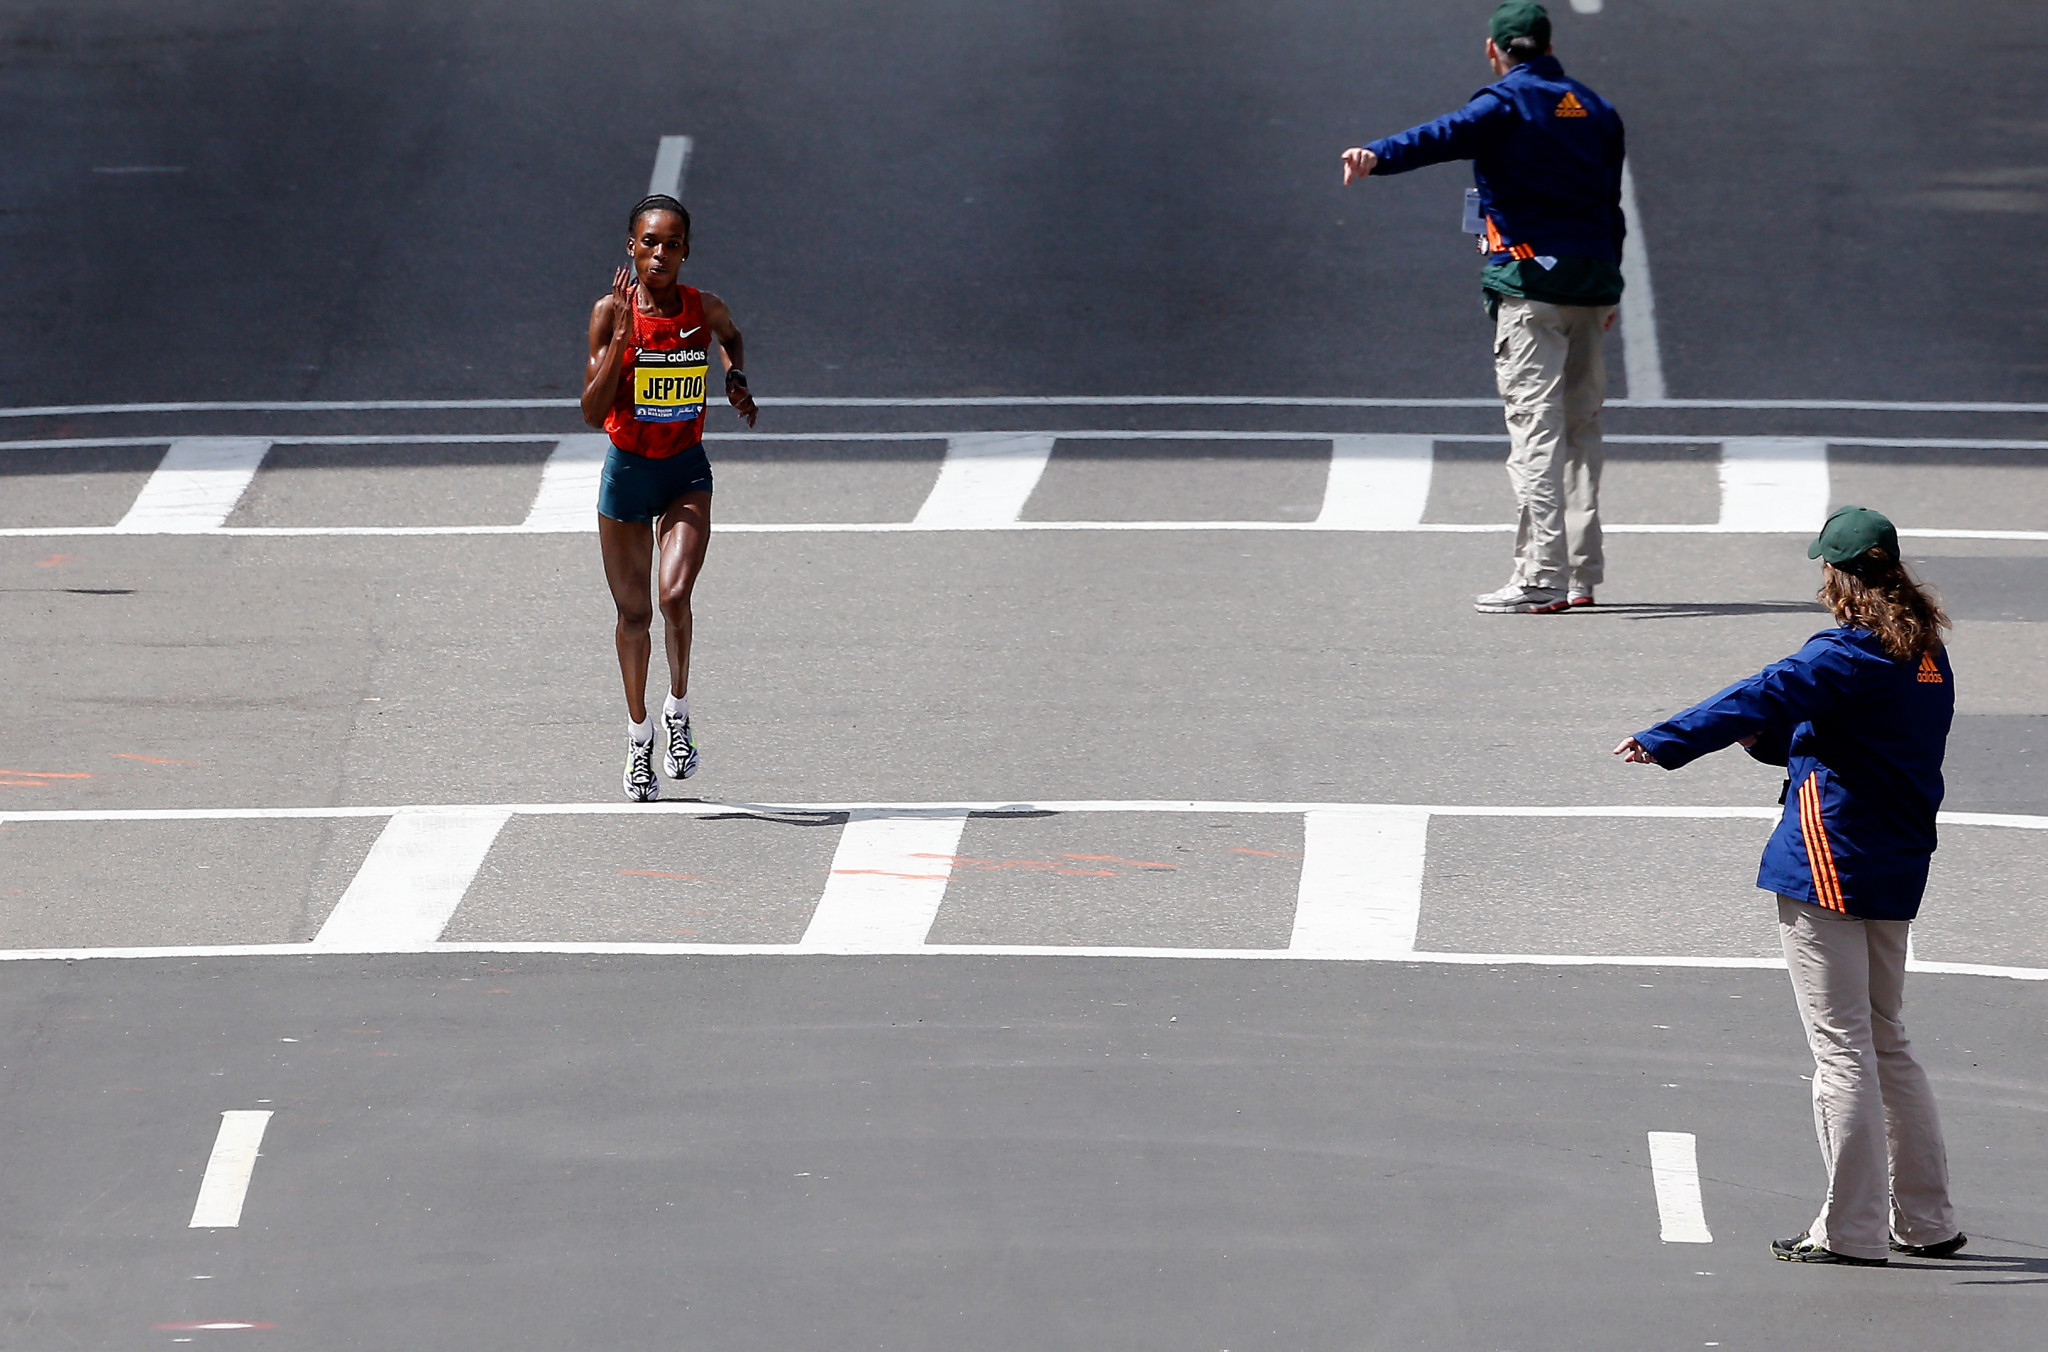 Rita Jeptoo has resumed training after serving a four-year doping ban ©Getty Images